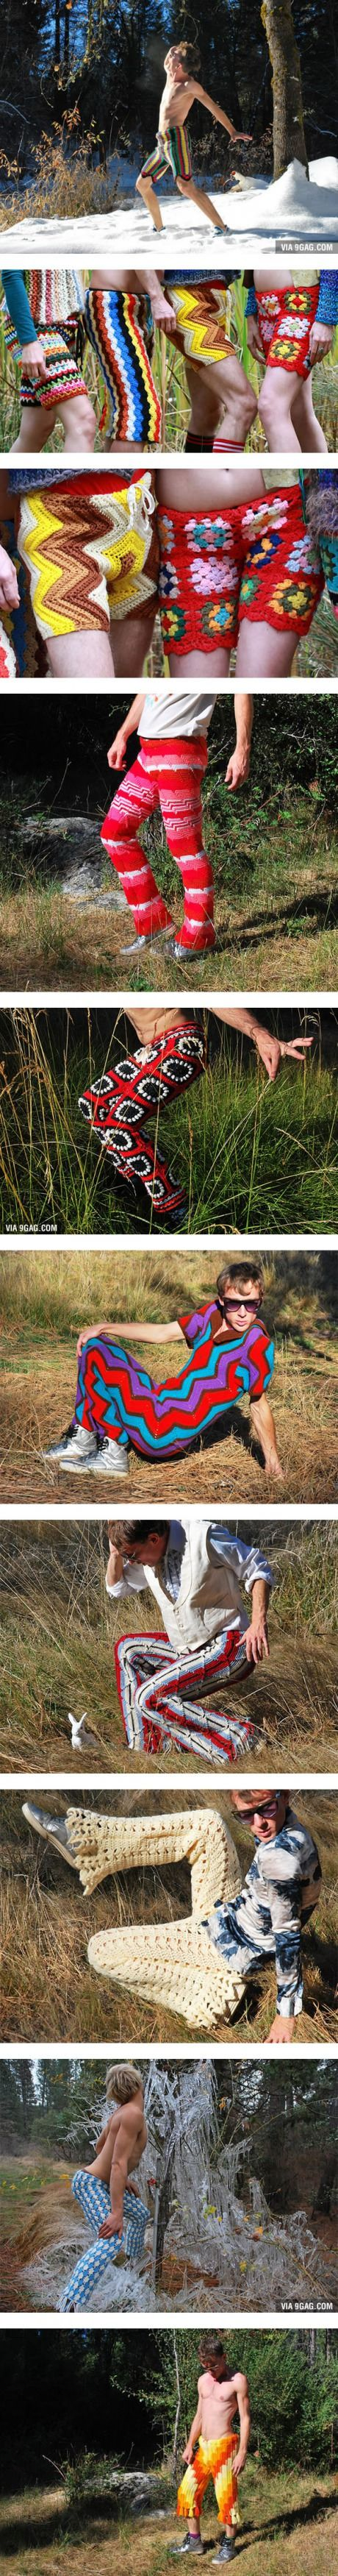 New Fashion For Men: Crochet Shorts Made From Recycled Vintage Blankets